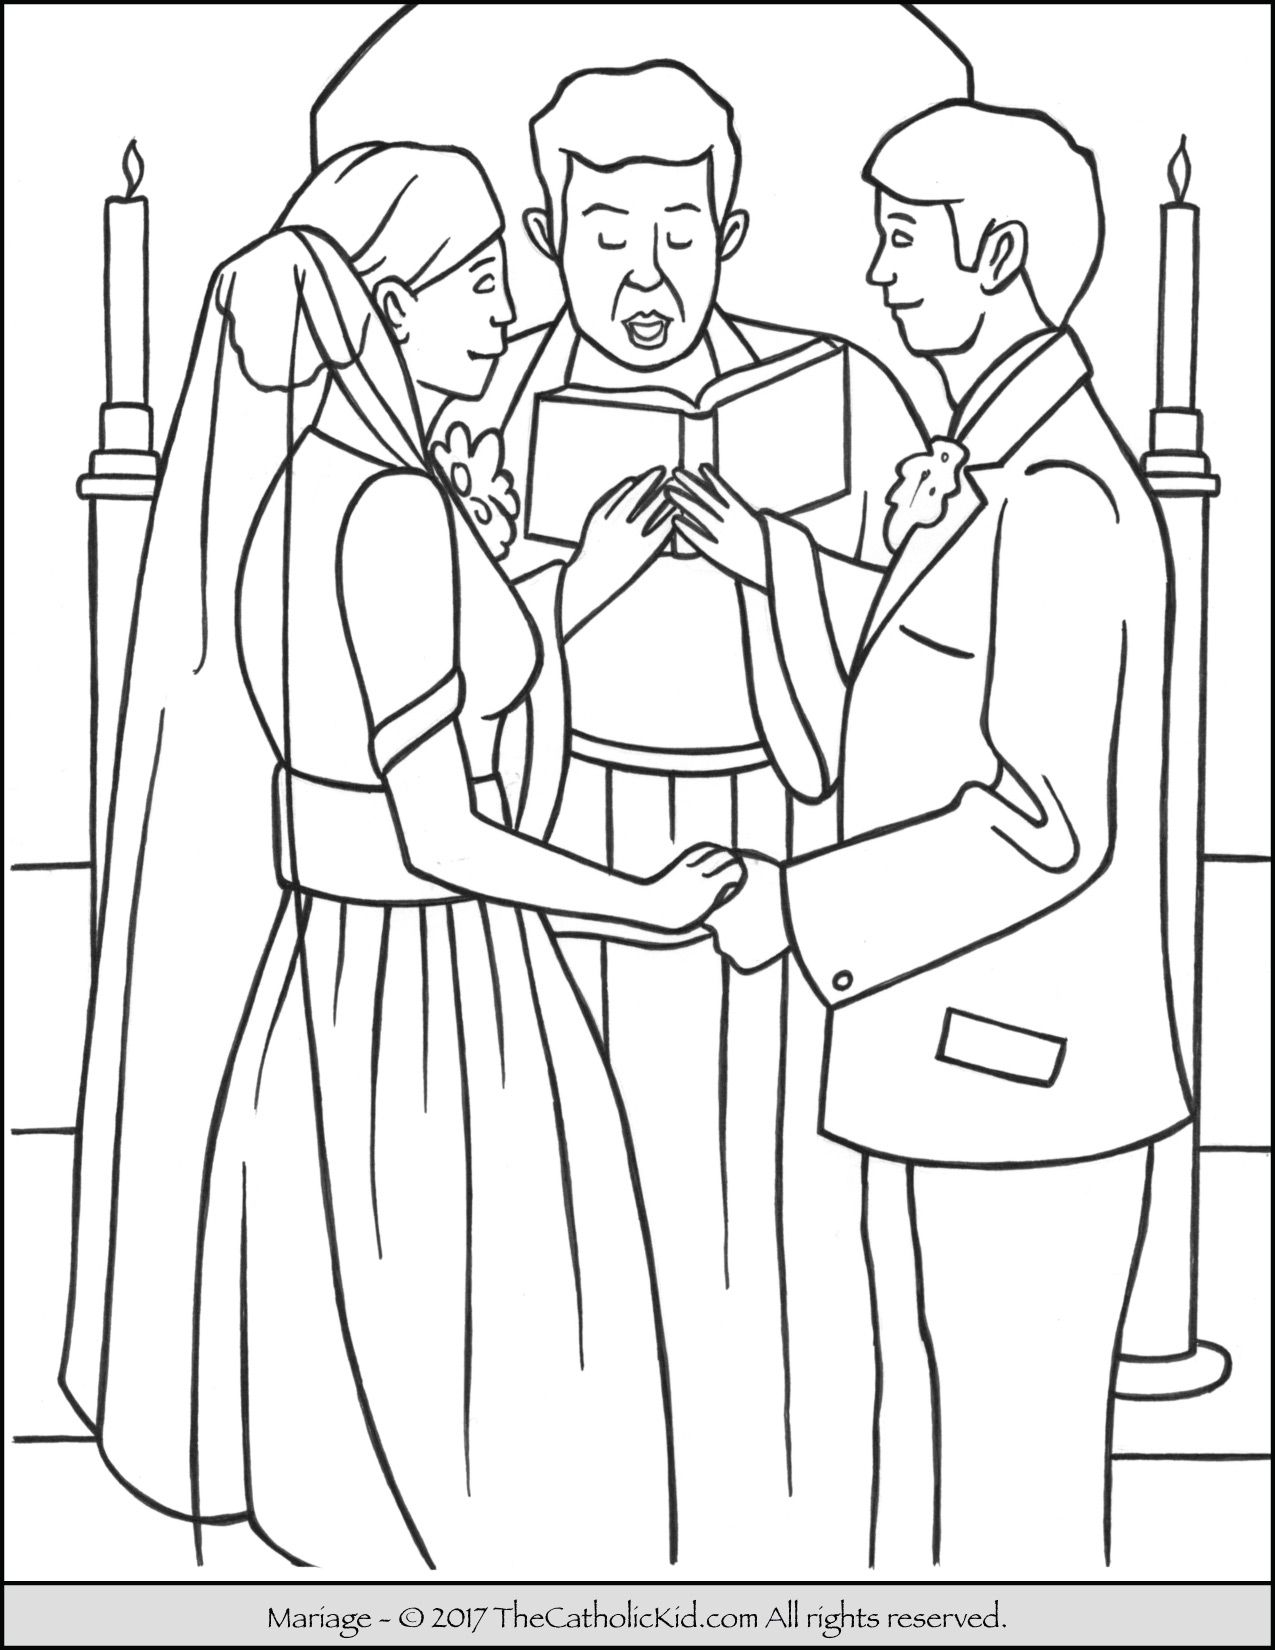 Sacrament Marriage Coloring Page Catholic Coloring 7 Sacraments